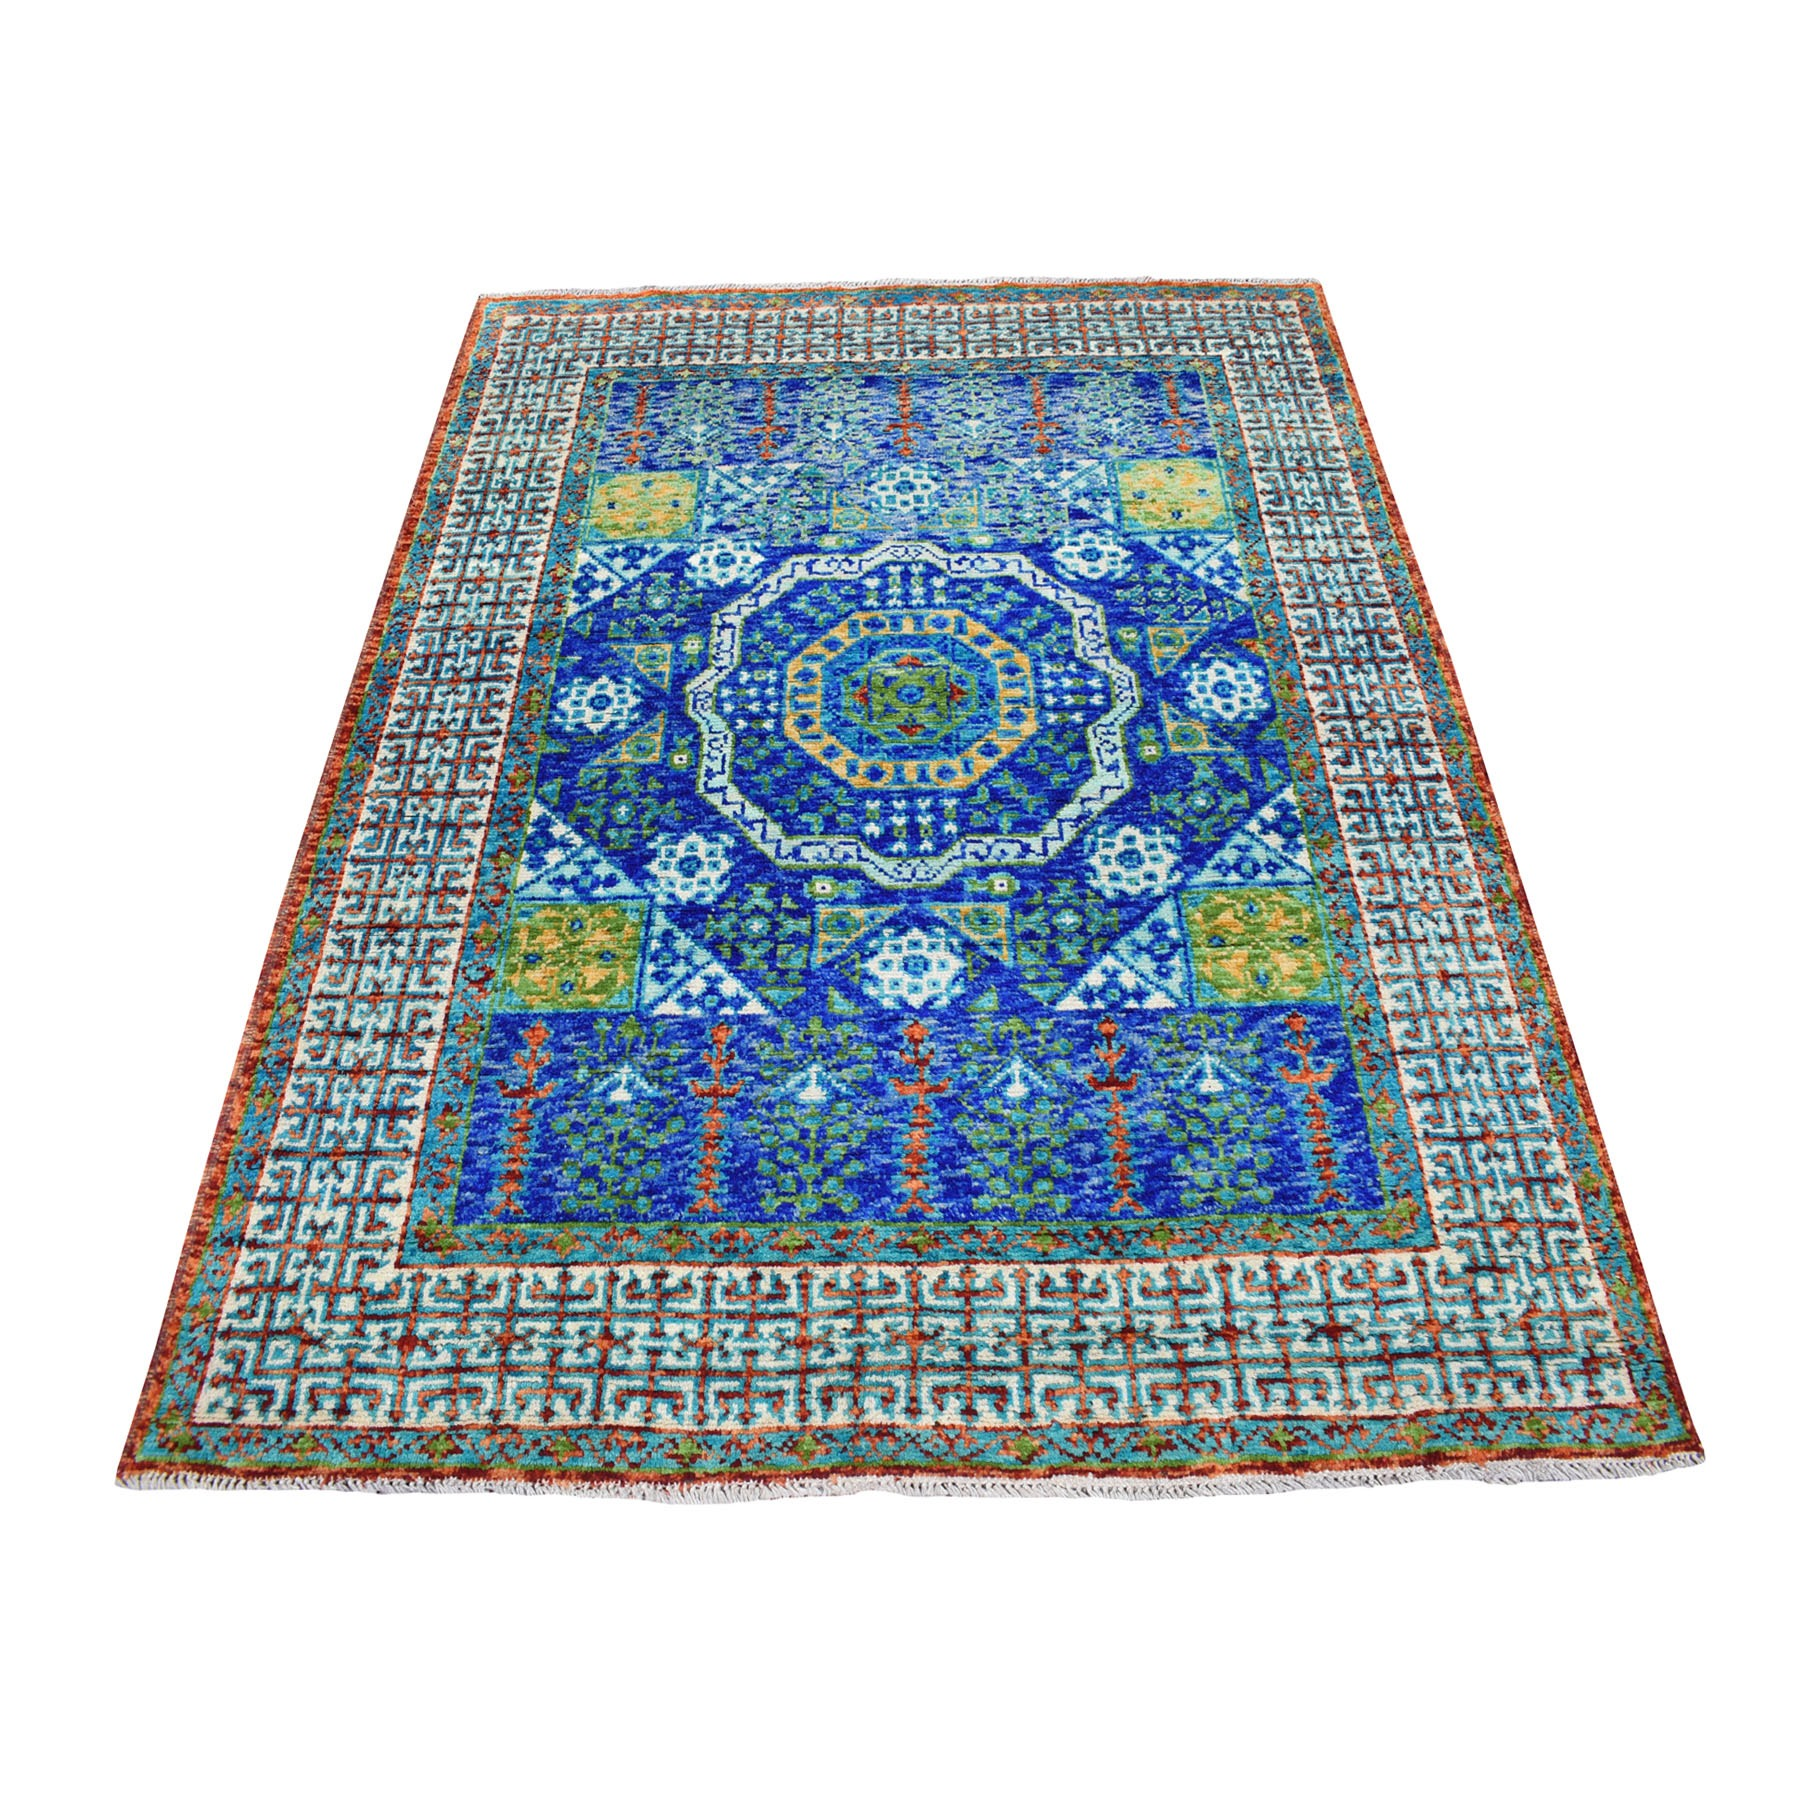 "5'1""x6'6"" Blue Mamluk Design Colorful Afghan Baluch Hand Knotted Pure Wool Oriental Rug"